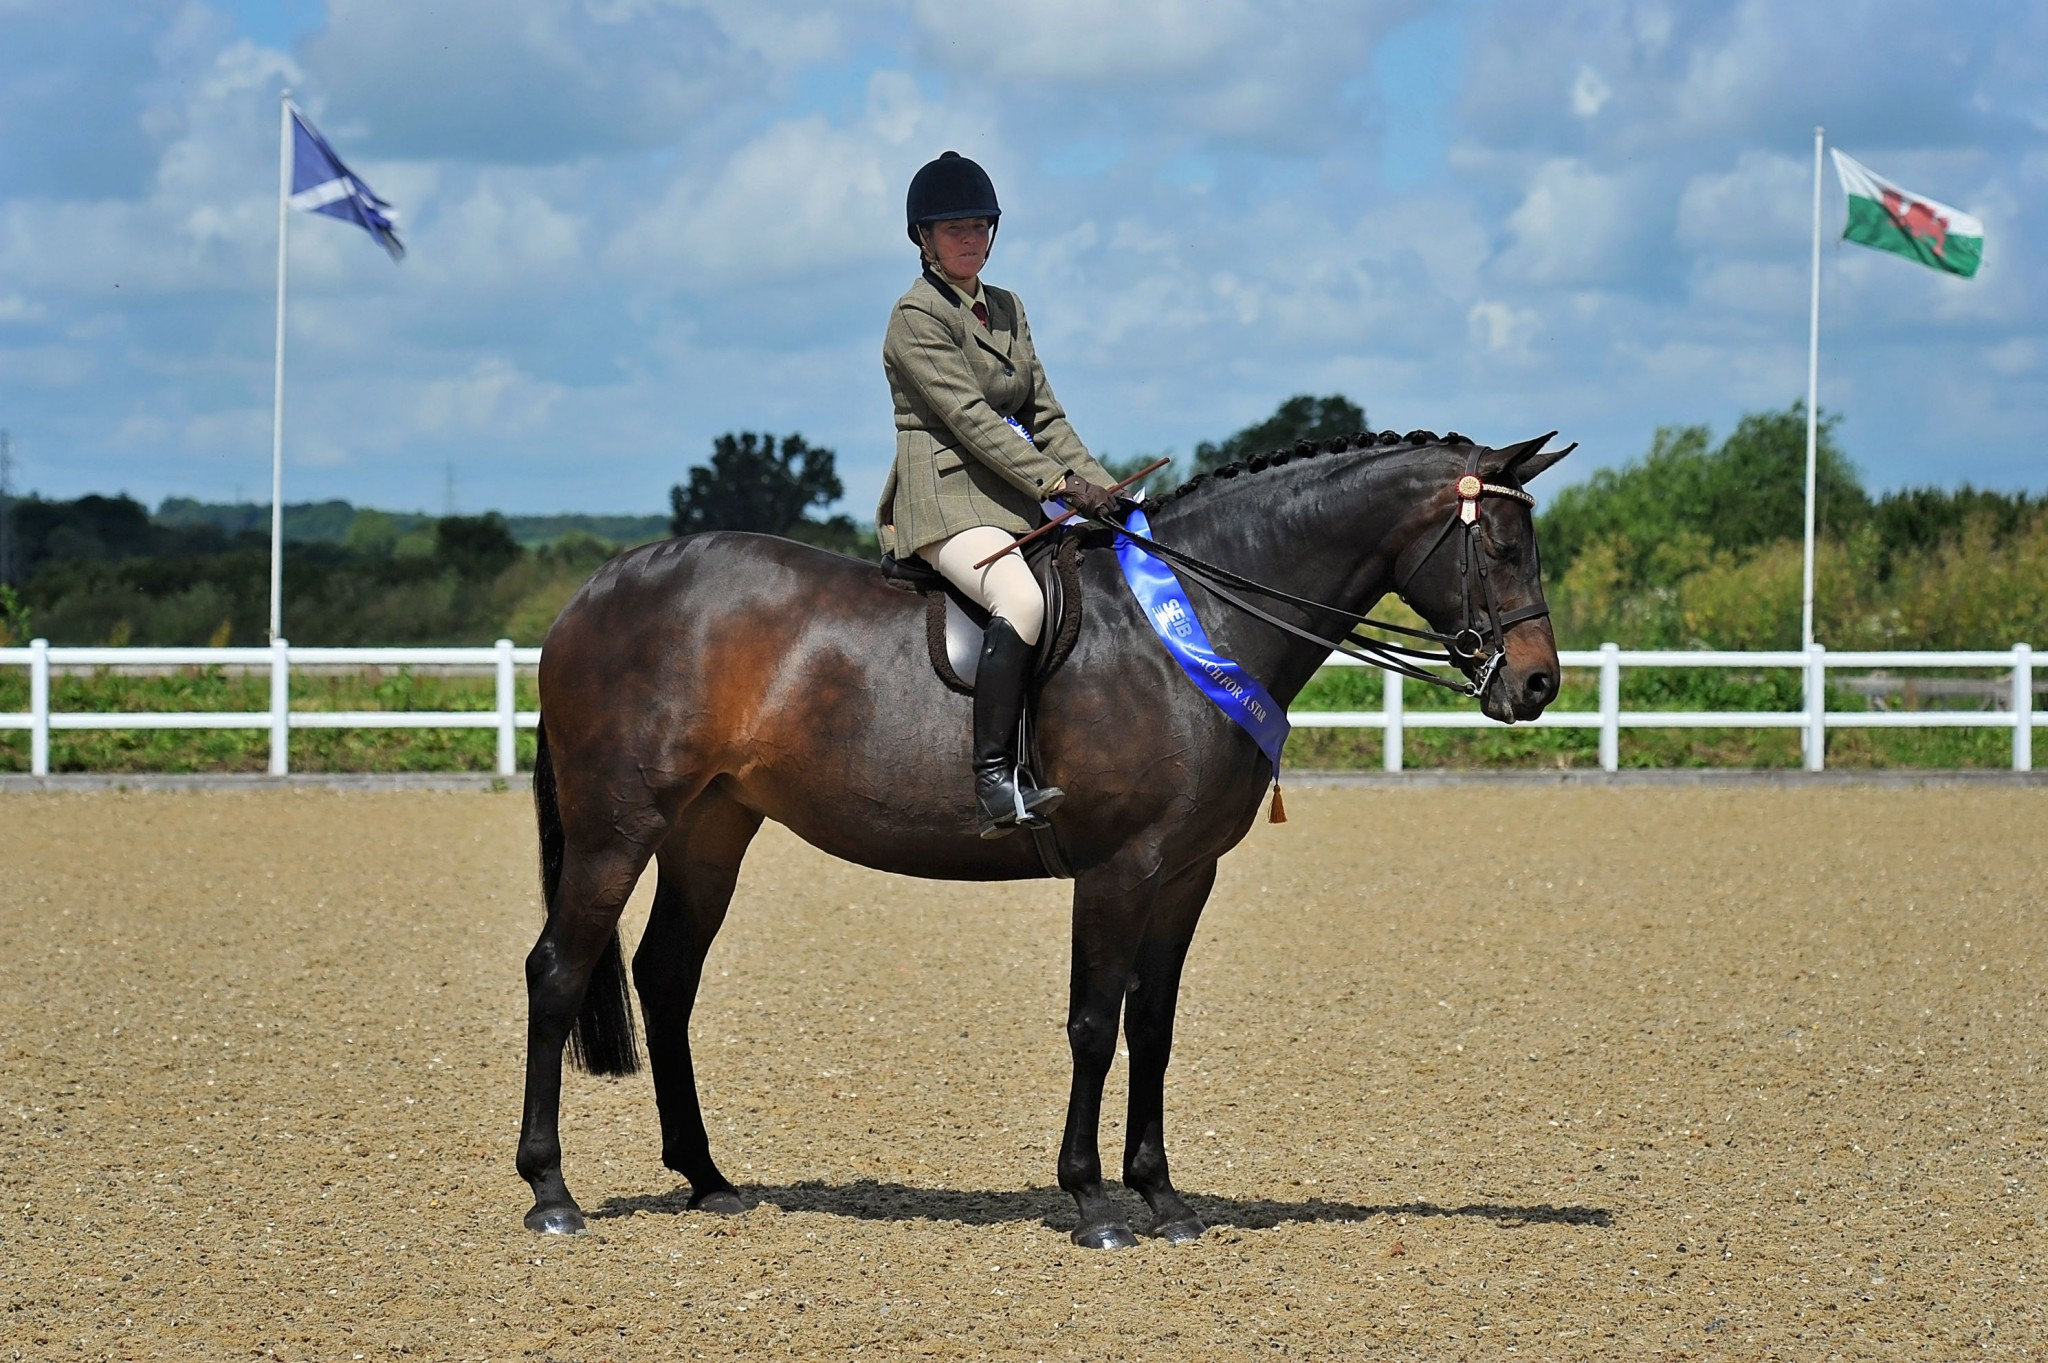 2nd Riding Horse Hack Samantha Henshaw Trevisquite Credit SMR Photos 1 - Local riders qualify for Horse of the Year Show